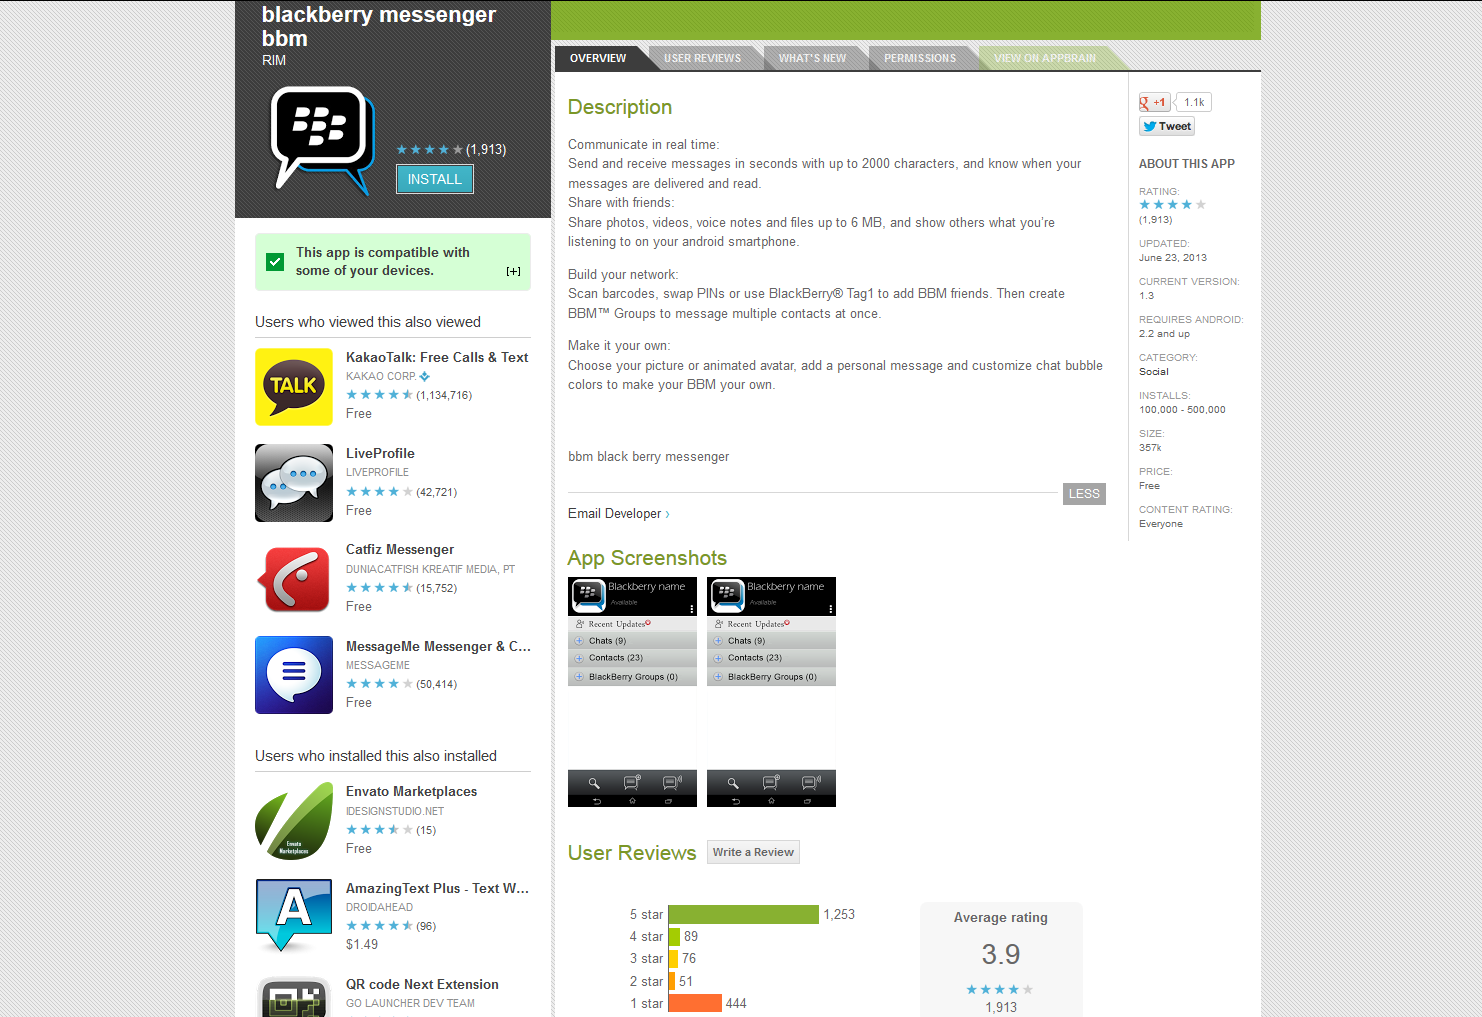 """PSA: This """"Blackberry Messenger BBM"""" Published By Developer RIM Has 100k+ Installs But Is As Fake As It Gets"""